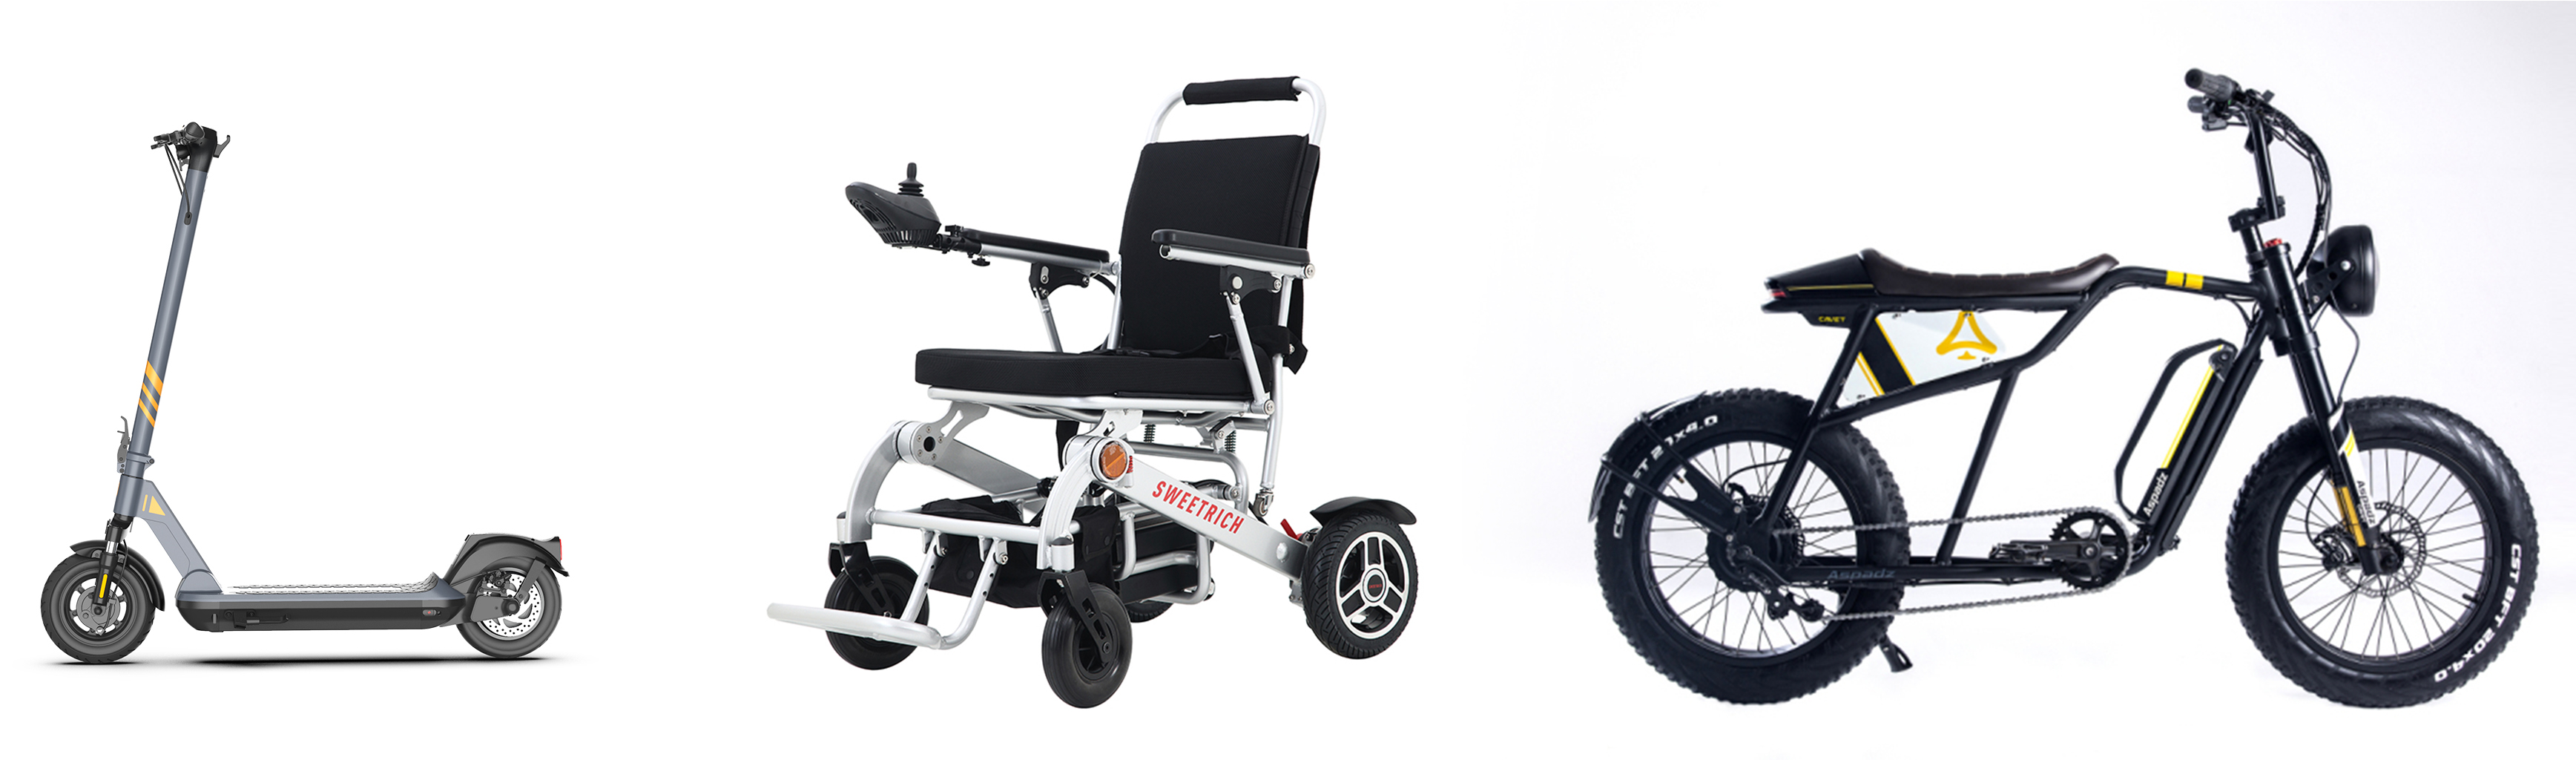 【Left: Smart Scooter,Middle: Smart Wheelchair,Right: Smart Electric Bicycle】